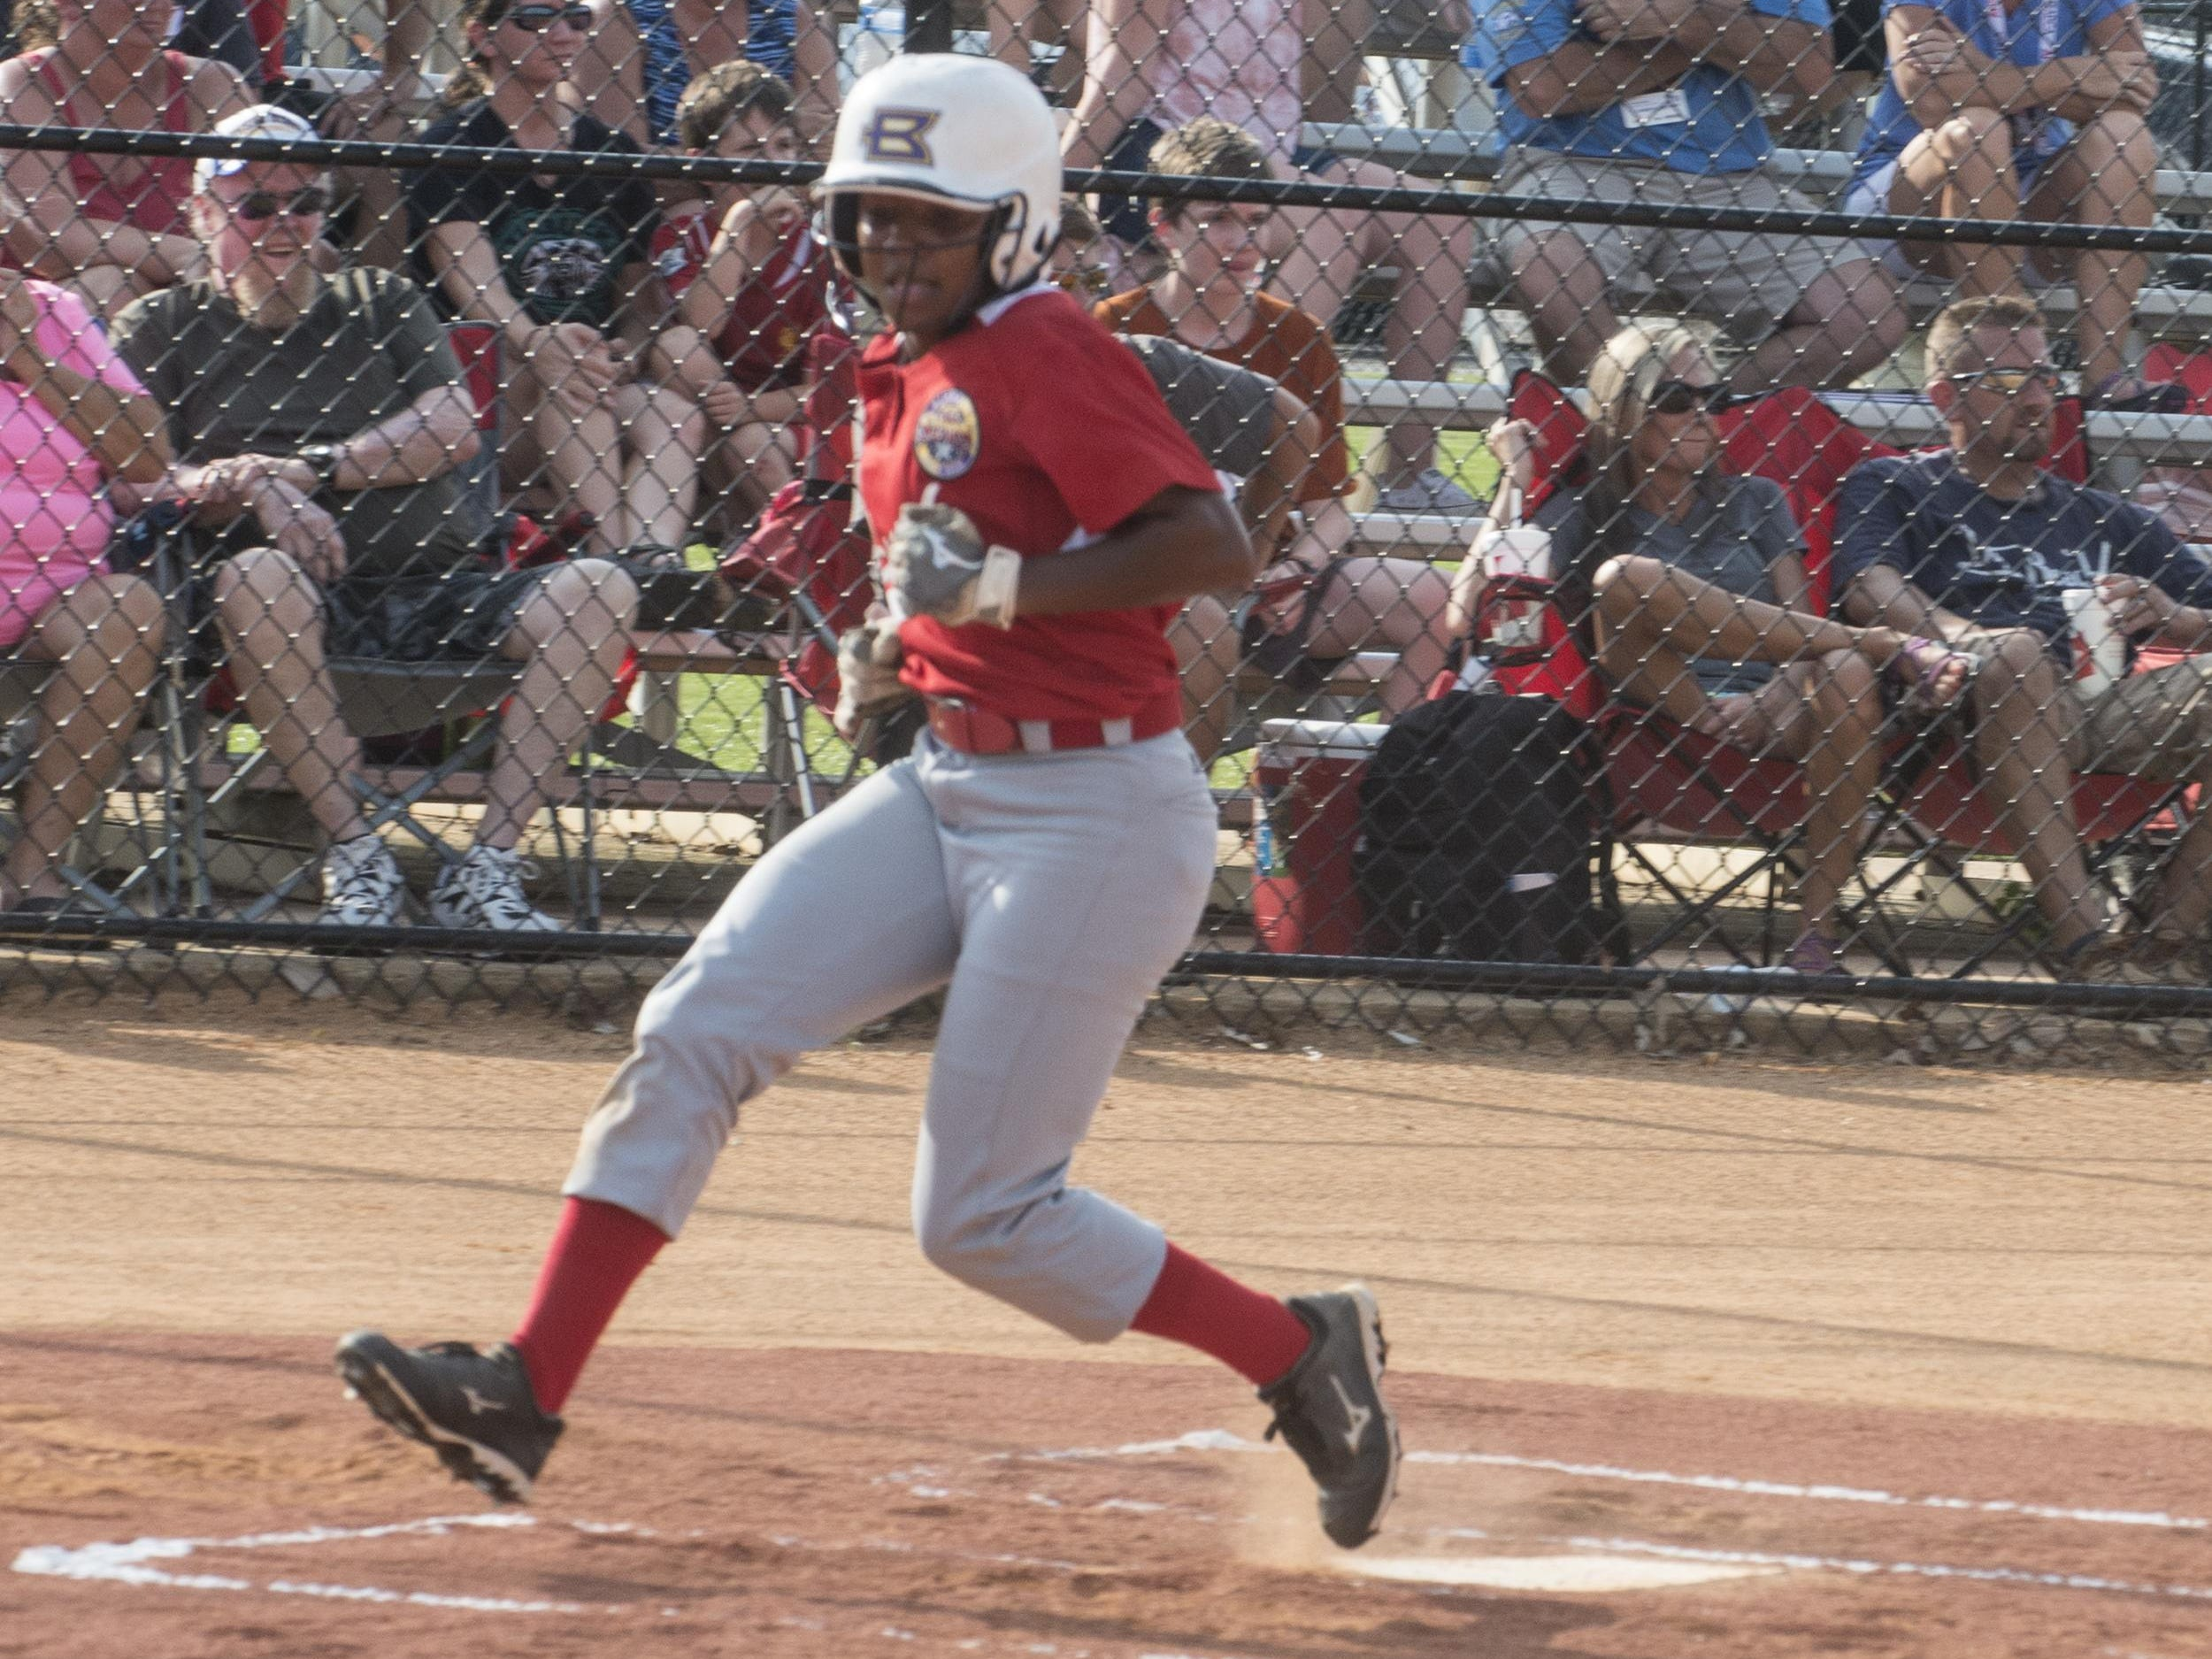 Elmore County player Elissa Brown of the South All-Stars team crosses the plate to score. The South All-Stars team took a 4-3 win in game 1 over the North team on Tuesday, July 21, 2015, at Lagoon Park in Montgomery.